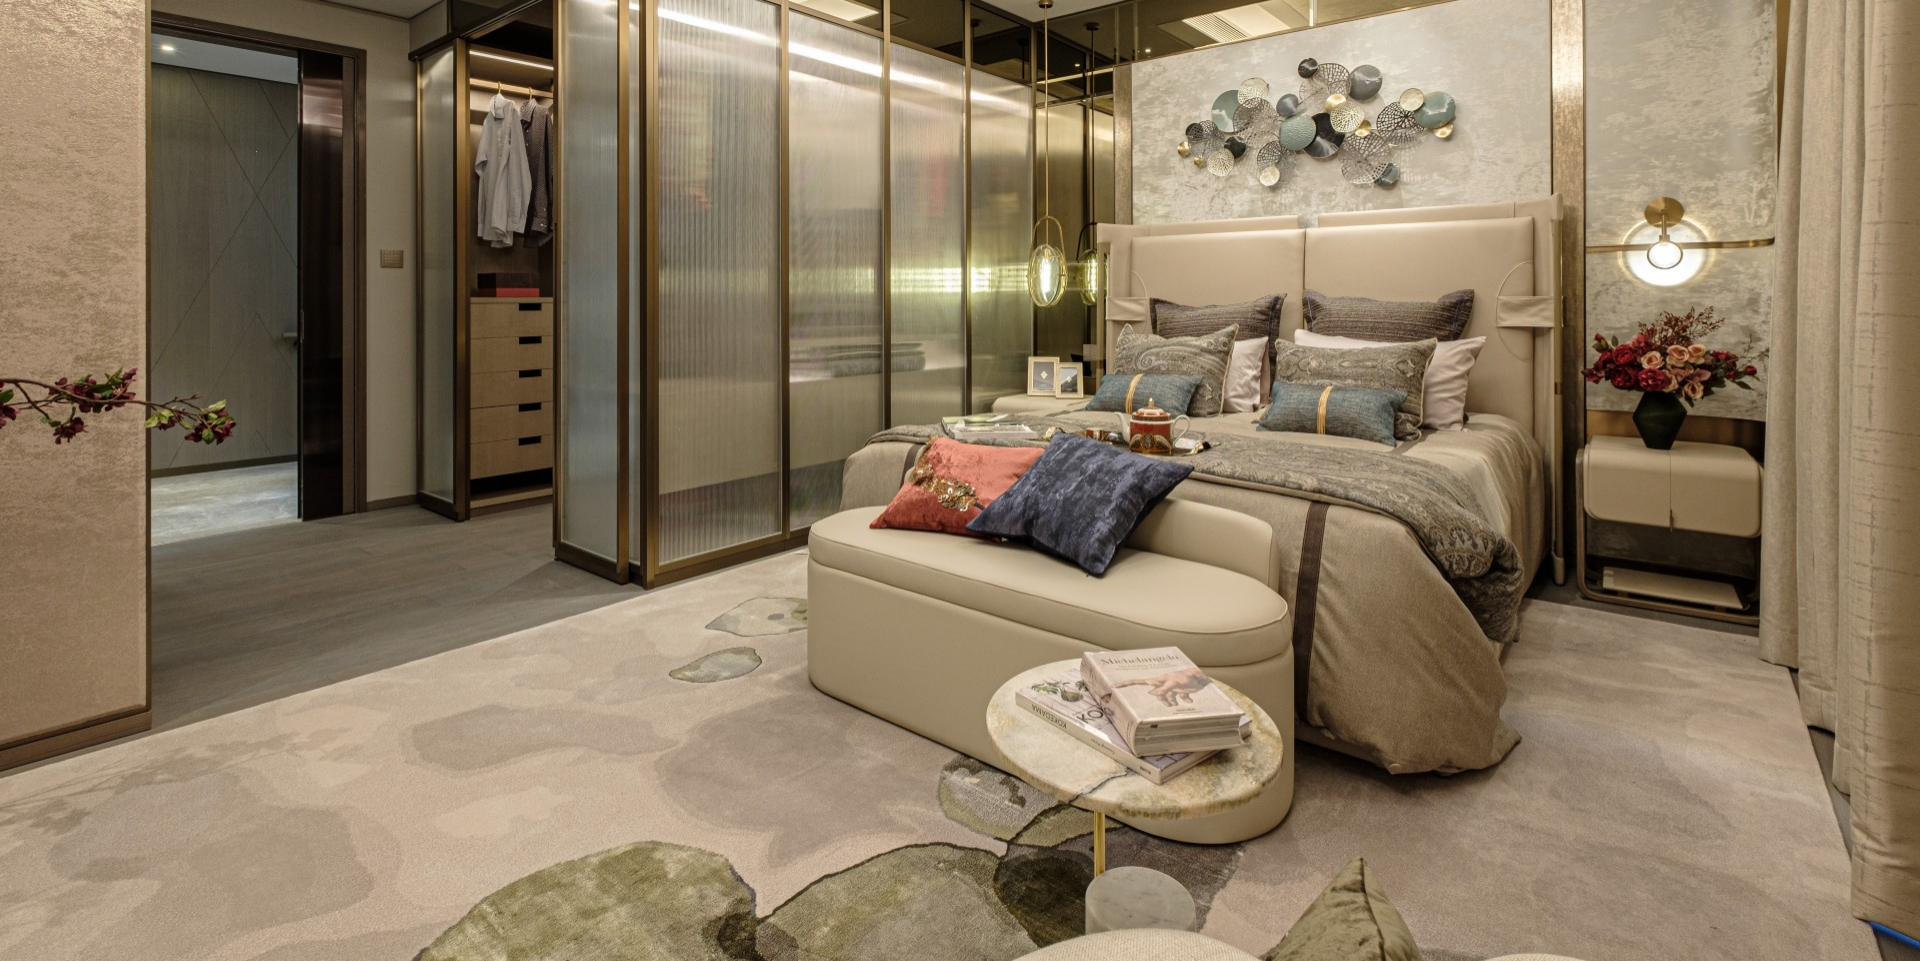 Singapore - Creating Luxury by Design